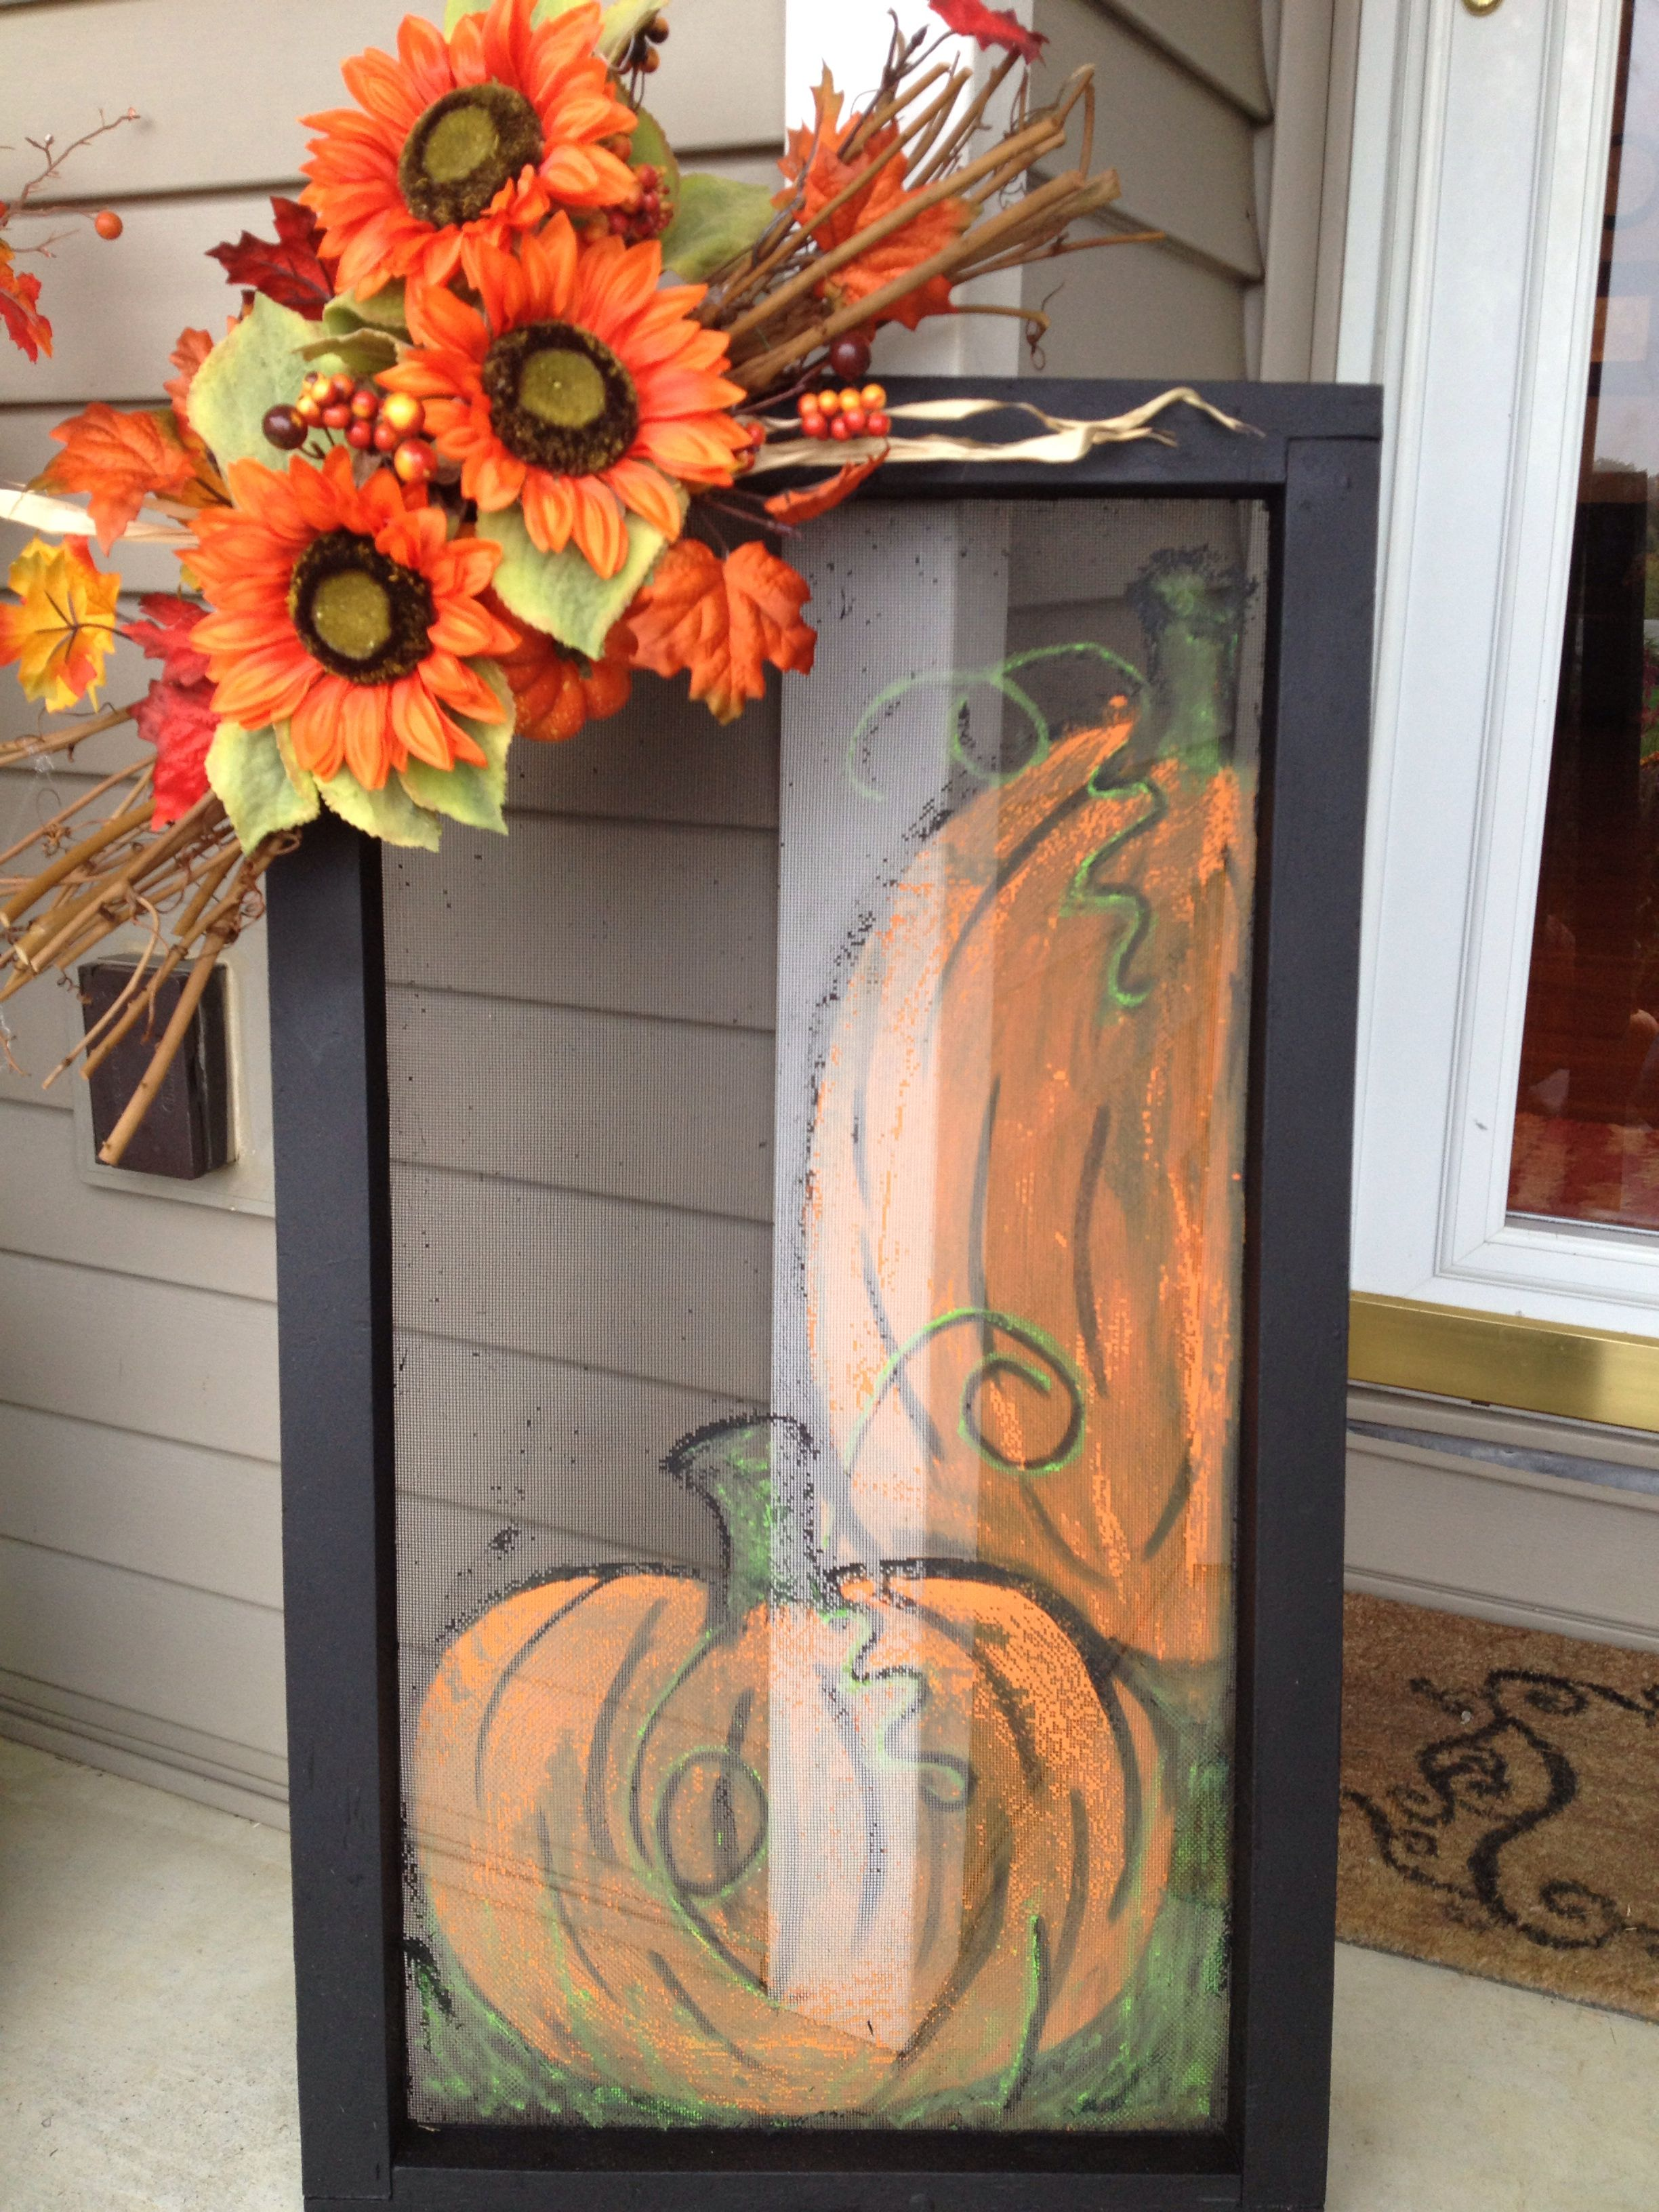 Fall Pumpkins Painted On An Old Window Screen Garnished With Fall Floral Arrangement Beautiful On The Porch Fall Pumpkins Painting Window Crafts Fall Decor